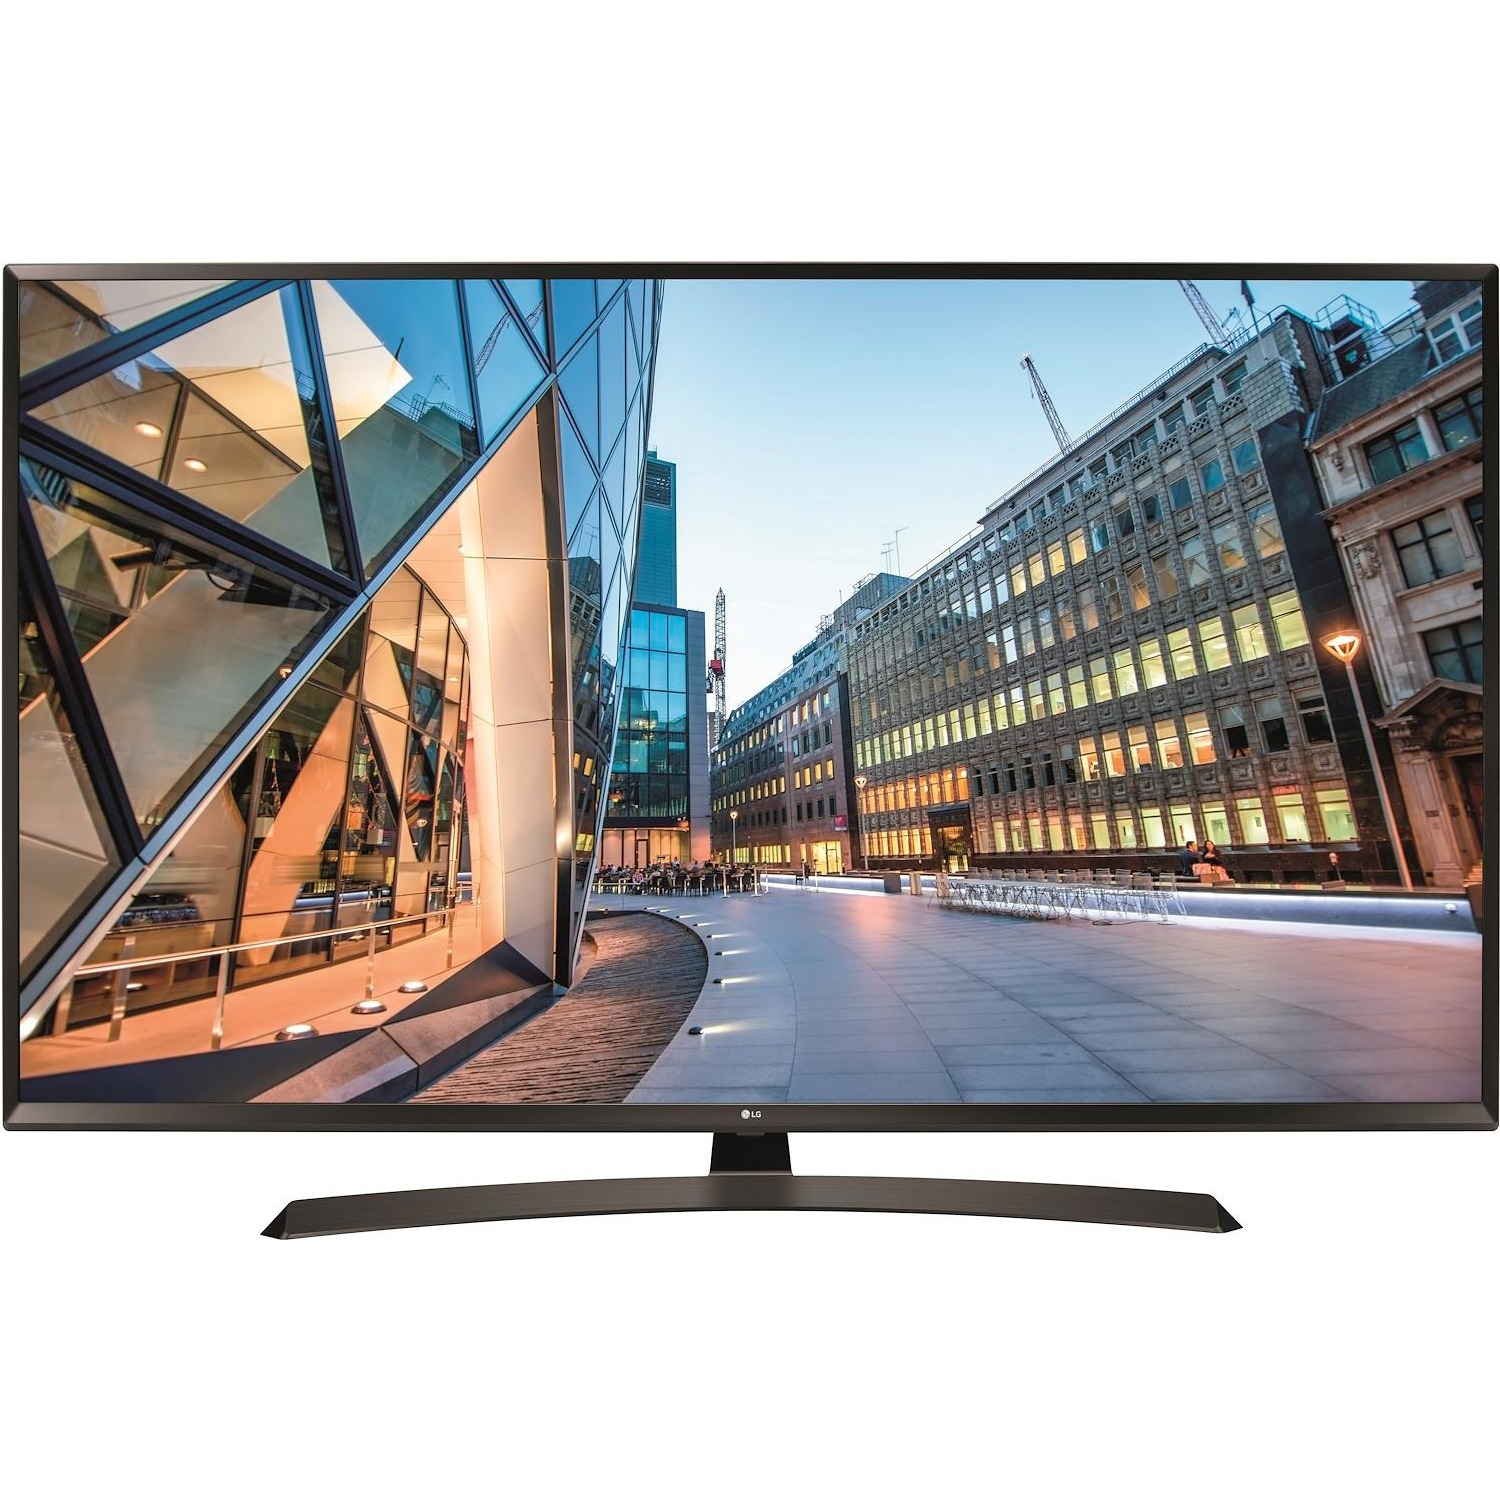 Immagine per TV LED Smart 4K UHD LG 65UJ634V da DIMOStore